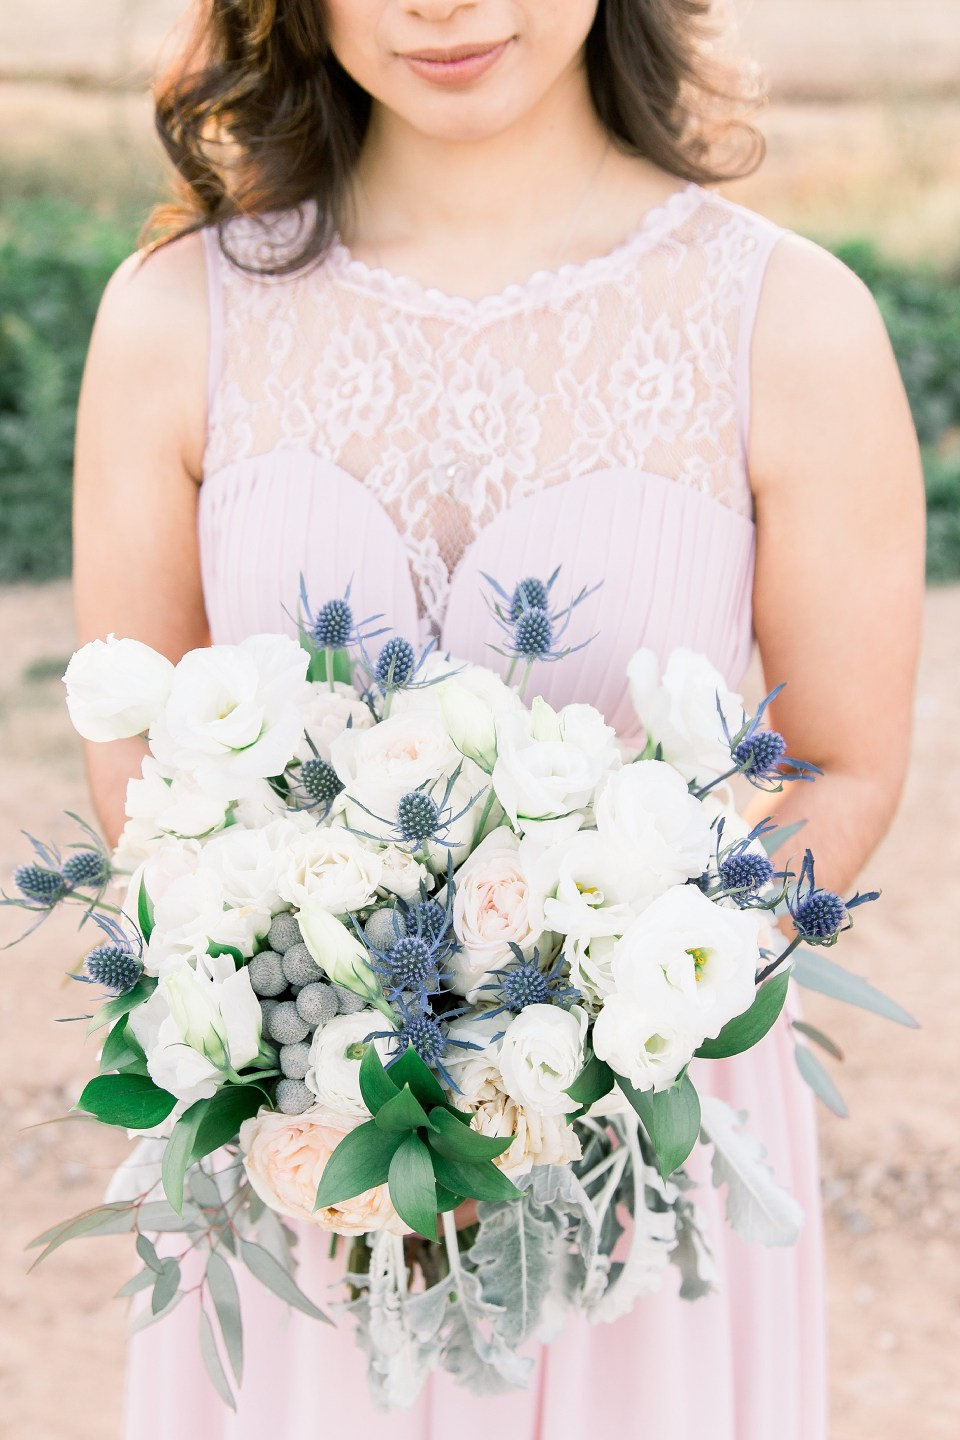 Phoenix Garden Wedding Photographer, Blush Garden Wedding, Blue Winter Phoenix Wedding, Arizona Wedding Photographer, AZWed, Arizona Weddings, Winter Wedding Day, Whispering Tree Ranch Wedding